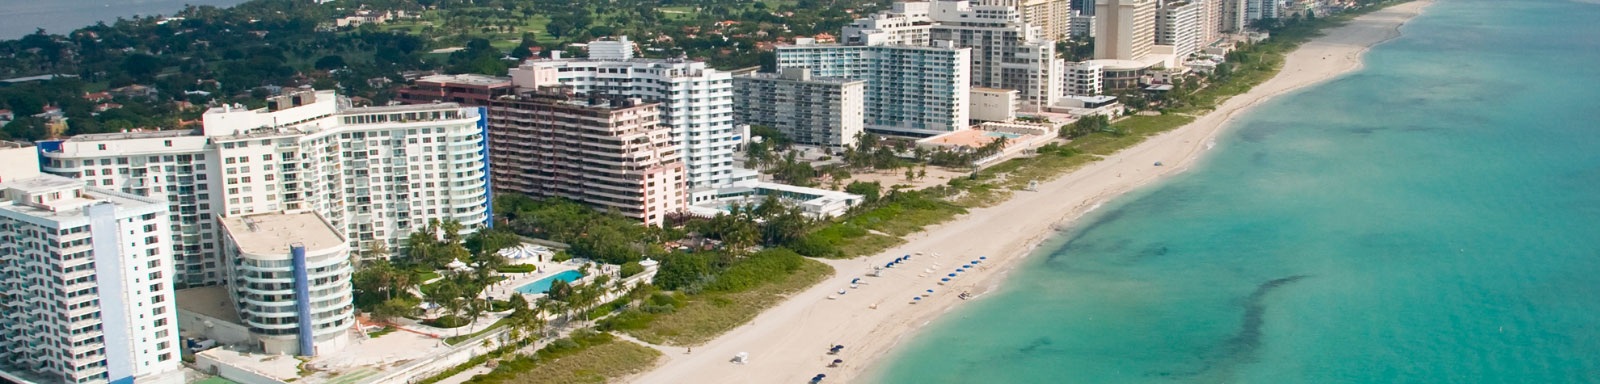 Bal Harbour Beach in Florida